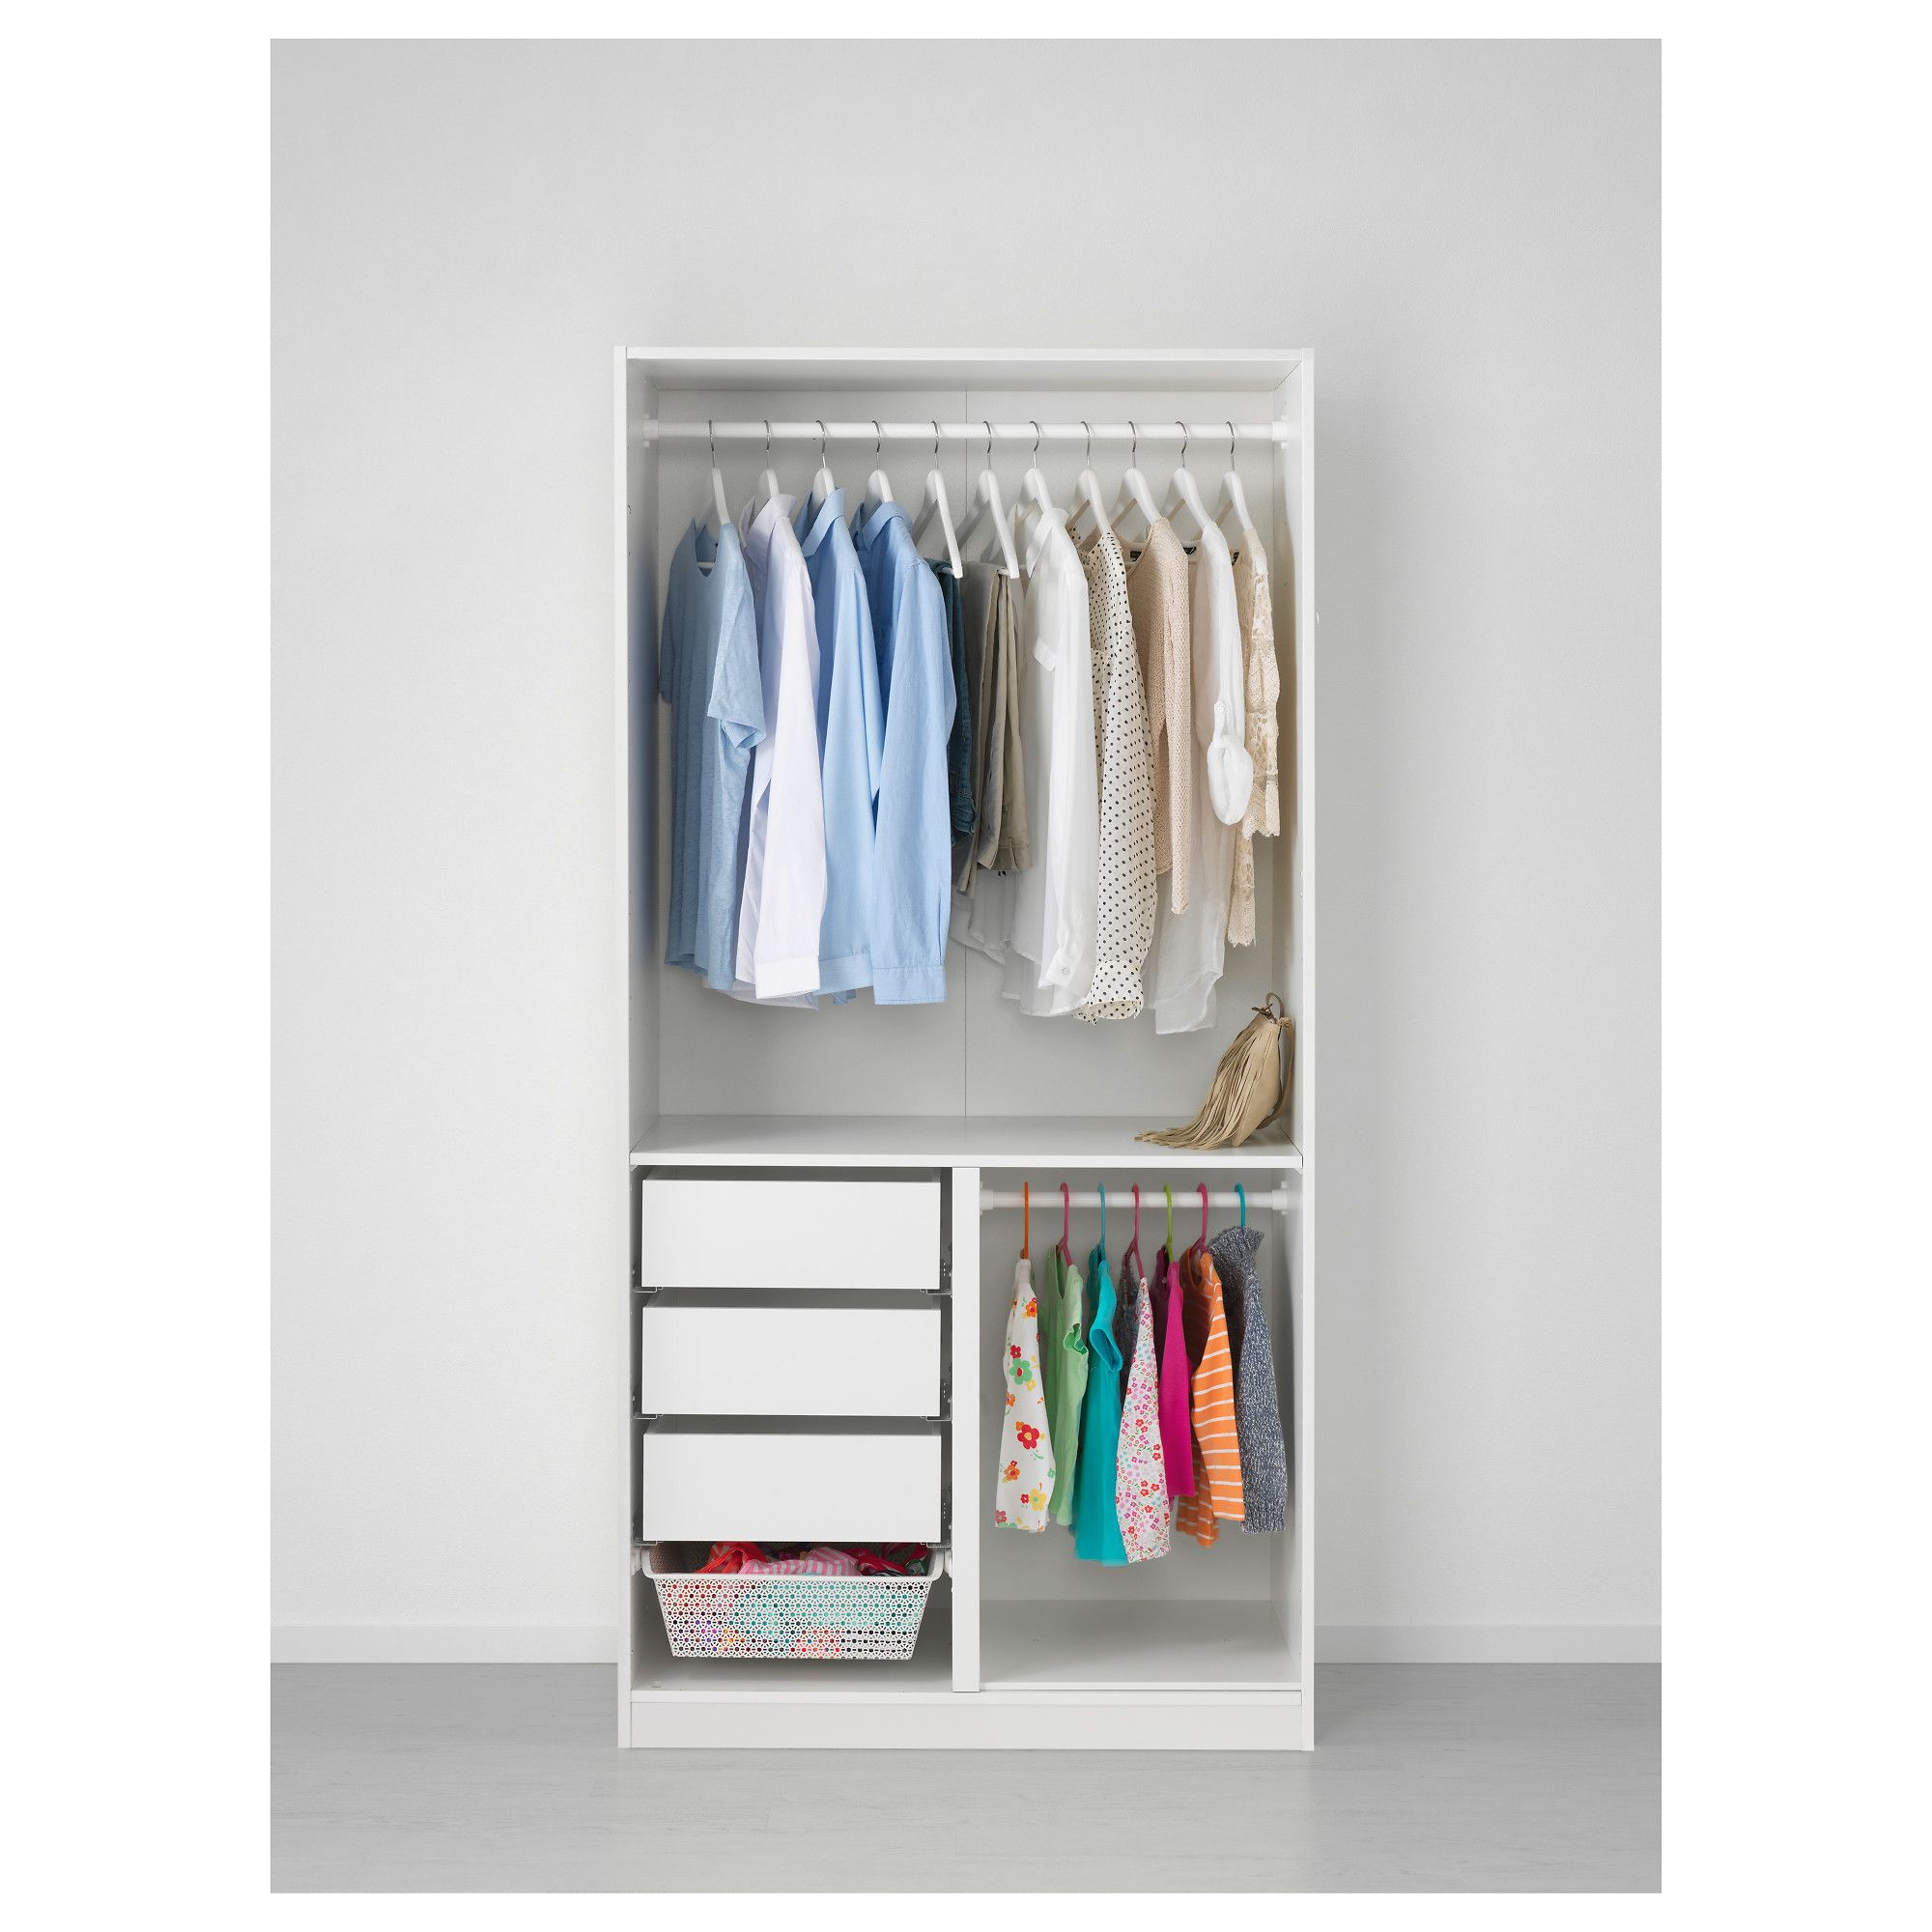 in year about the glass read collections ikea brochure gb uggdal terms pax en white guarantee grey wardrobe